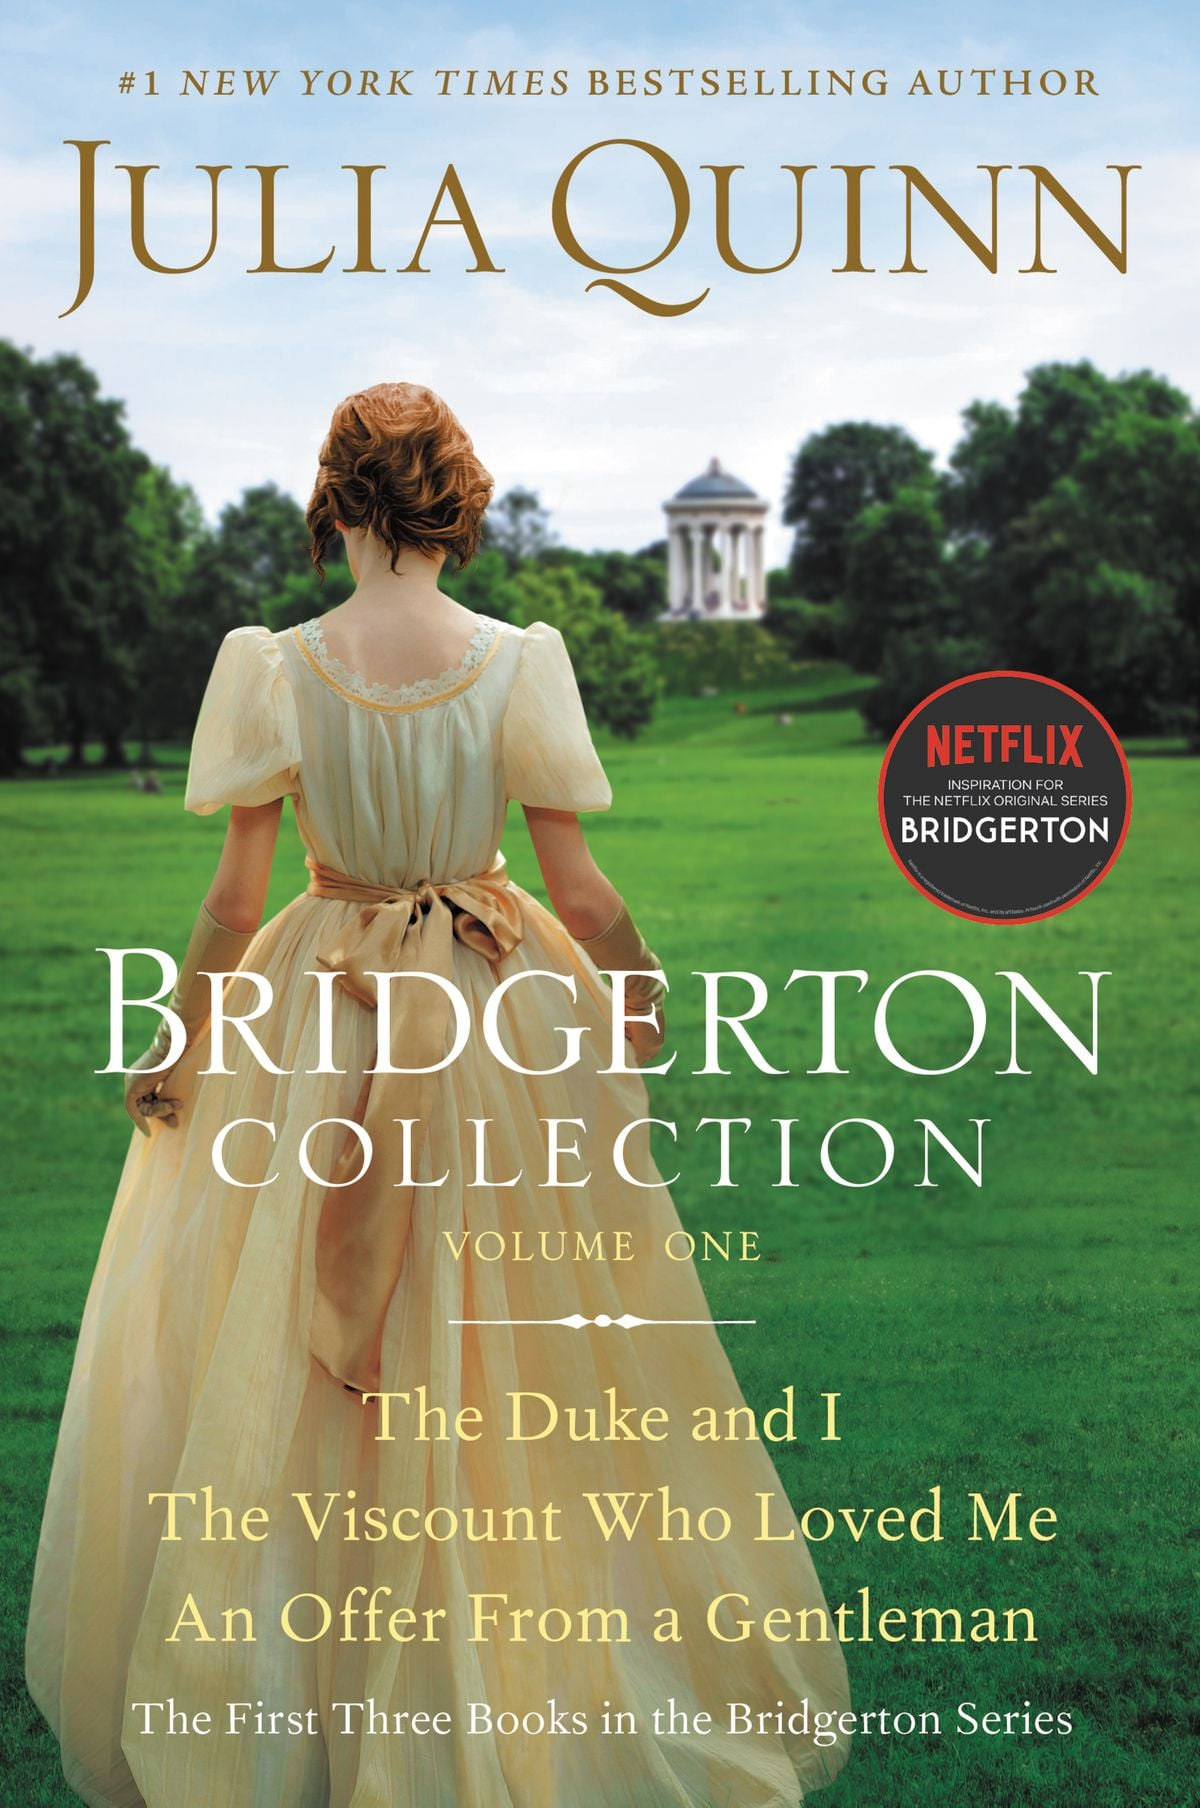 Everything You Need to Know About the Book Series That Inspired Netflix's Bridgerton